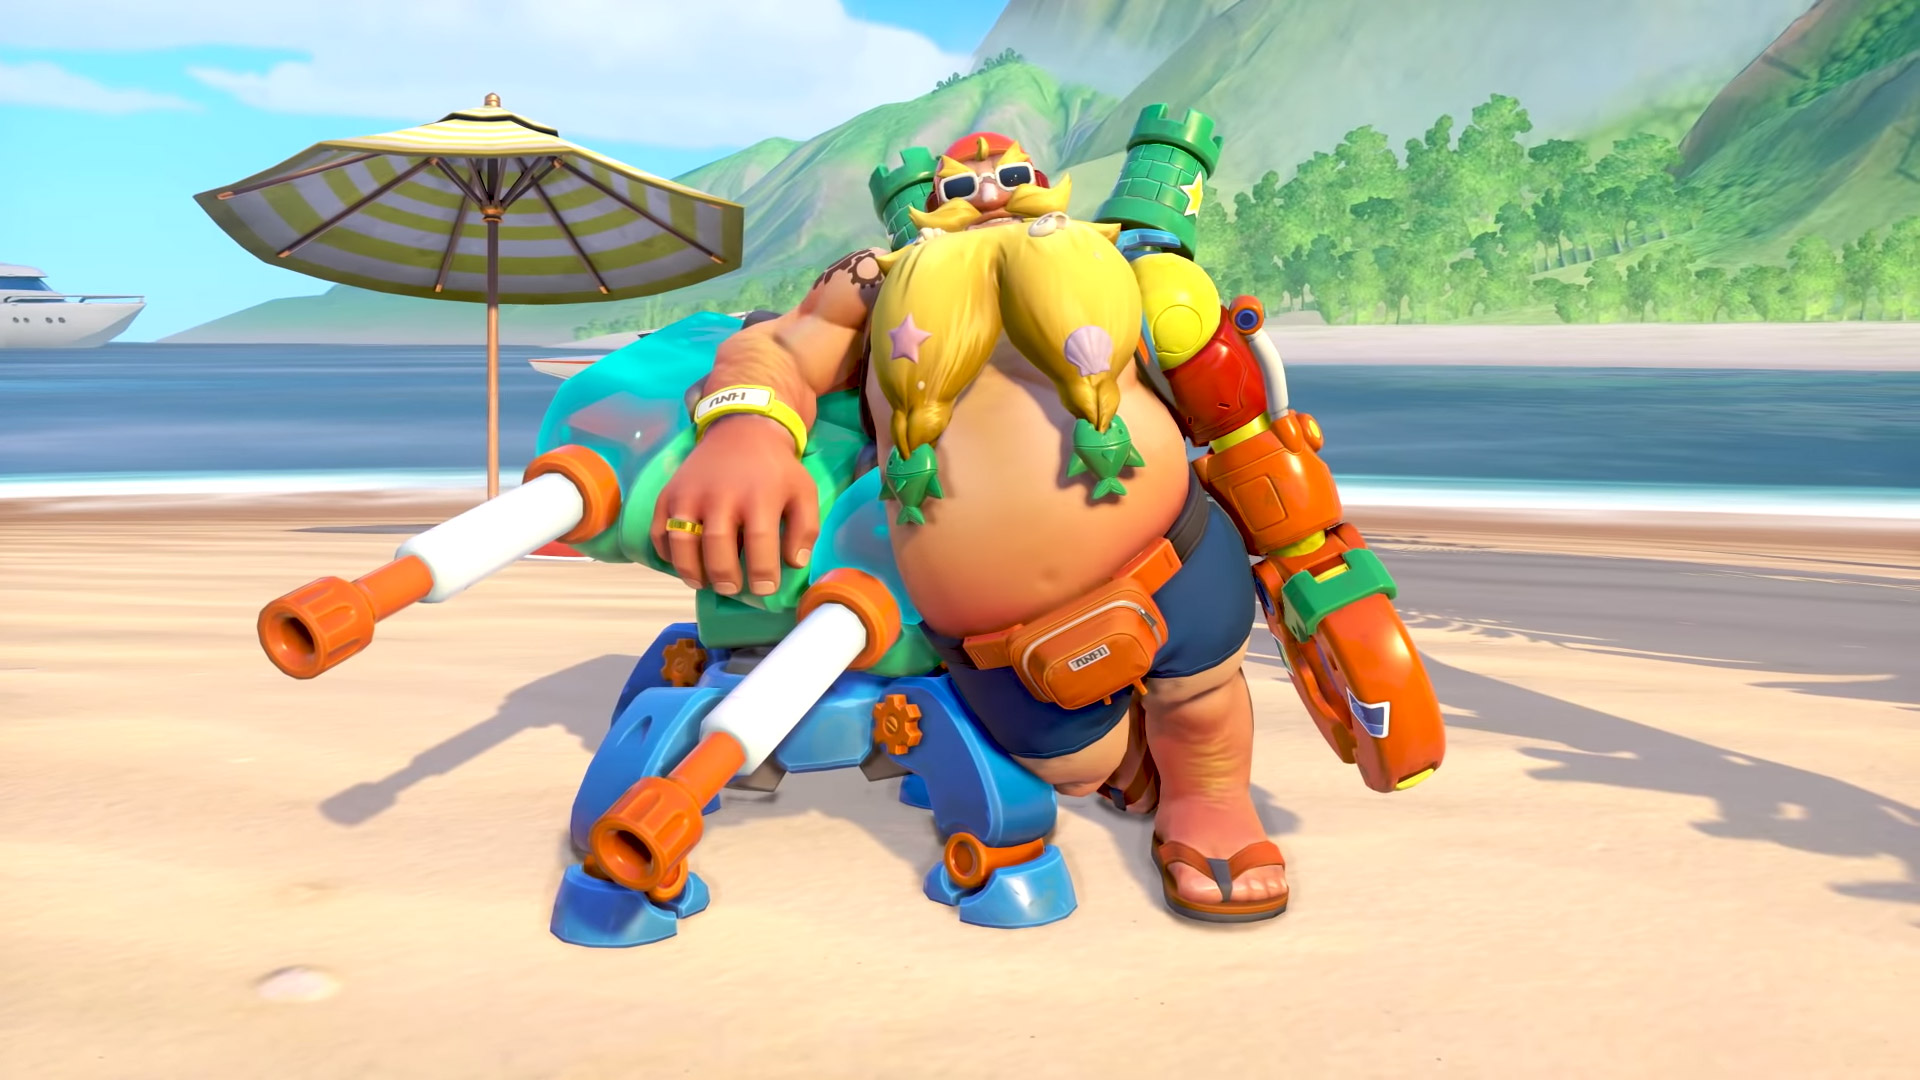 You can unlock Overwatch skins with the Summer Games weekly challenges screenshot